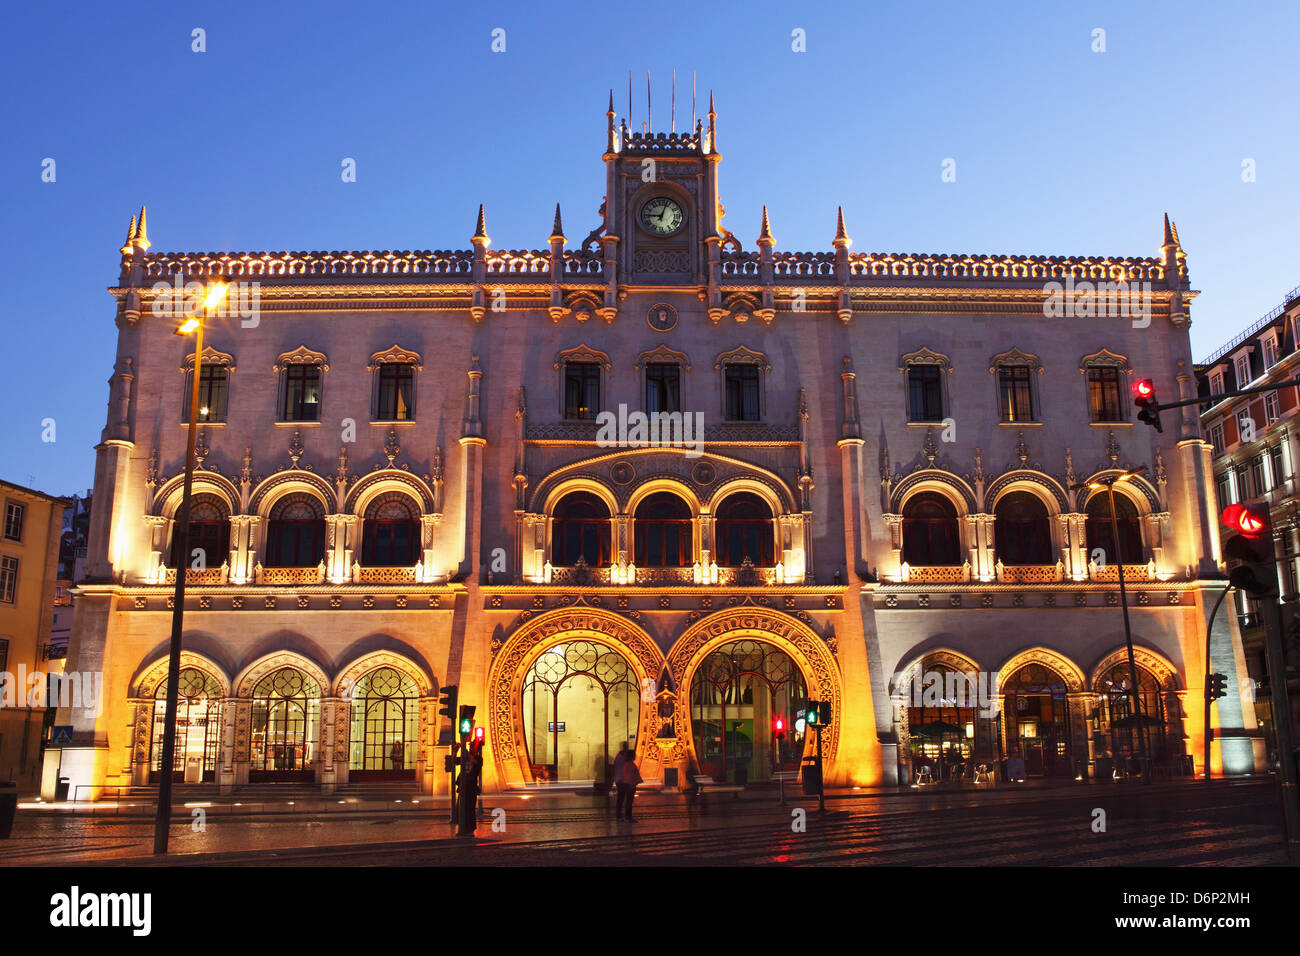 The Neo-Manueline facade of Rossio railway station, at night, in the Baixa district of Lisbon, Portugal, Europe - Stock Image